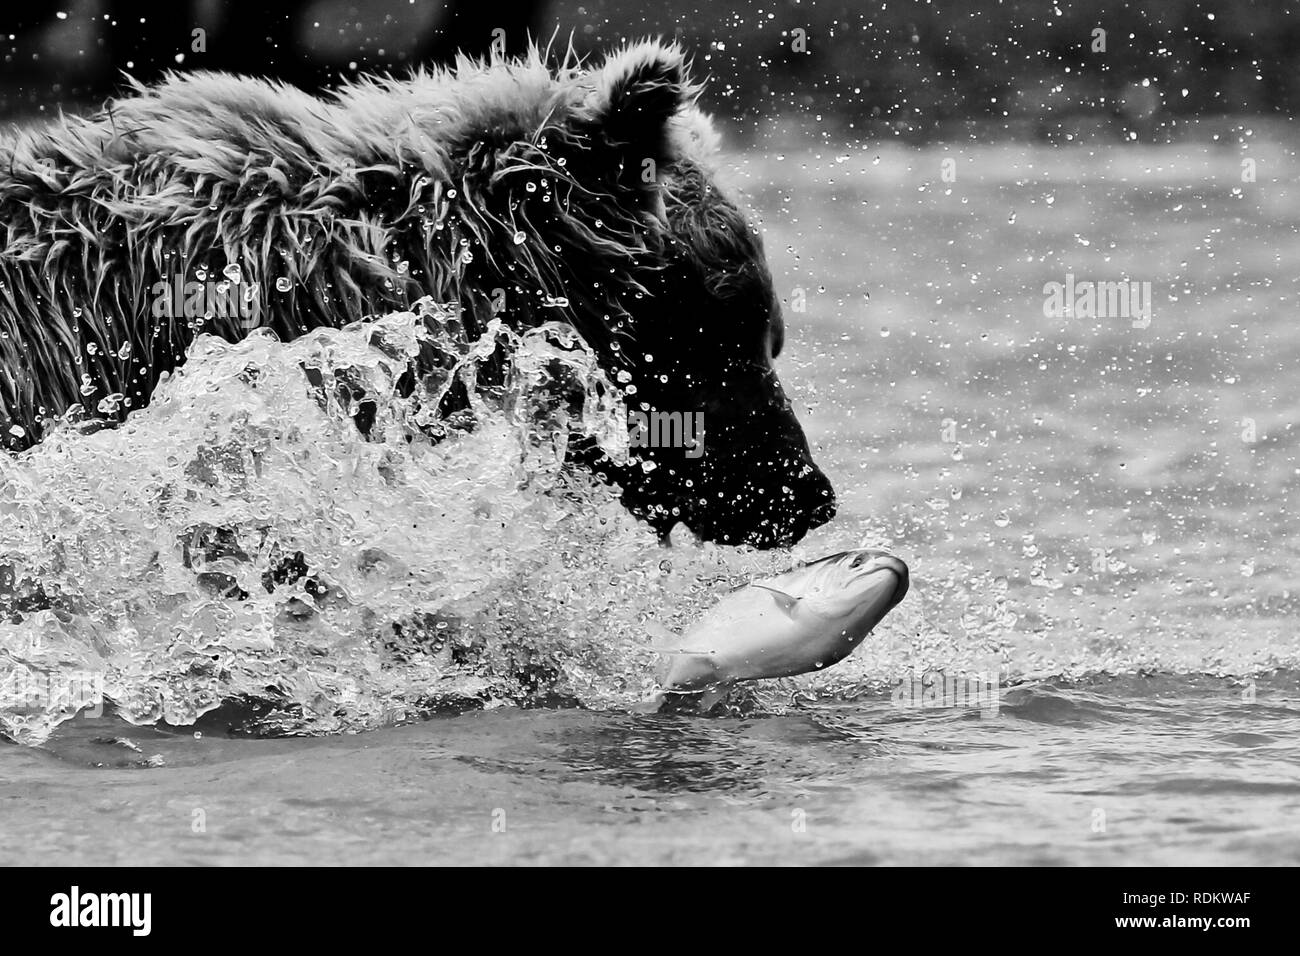 a brown bear, Ursus arctos, lunges for a salmon in the ocean at Hallo Bay, Katmai National Park, Alaska, where bear viewing is  a popular activity - Stock Image